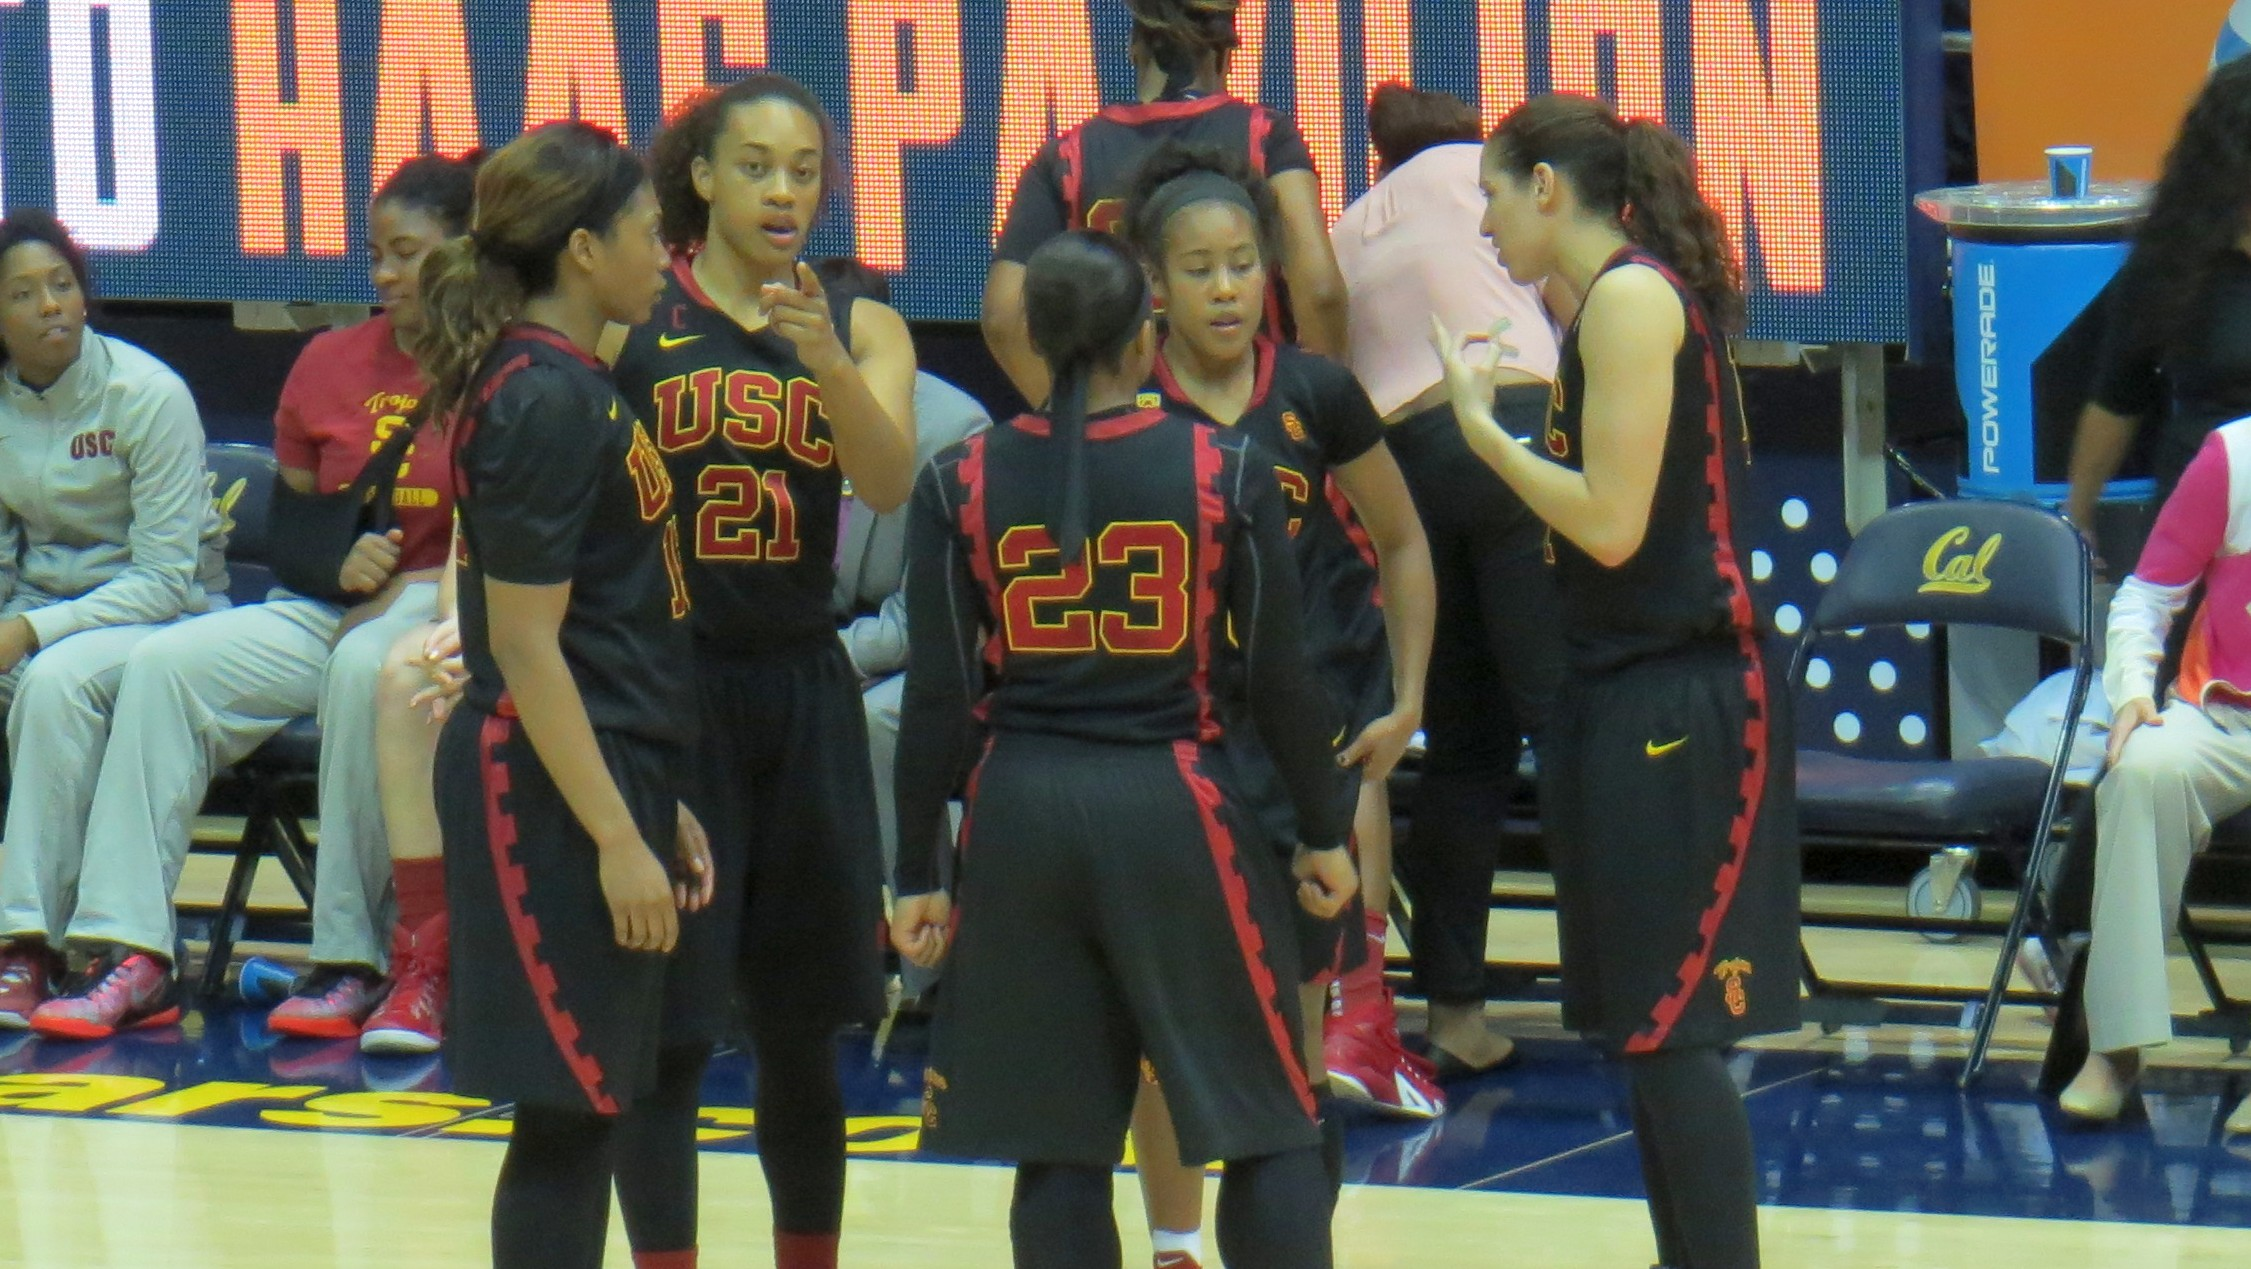 Alexis Lloyd comes off the bench to spark USC in road win over Cal, 65-54